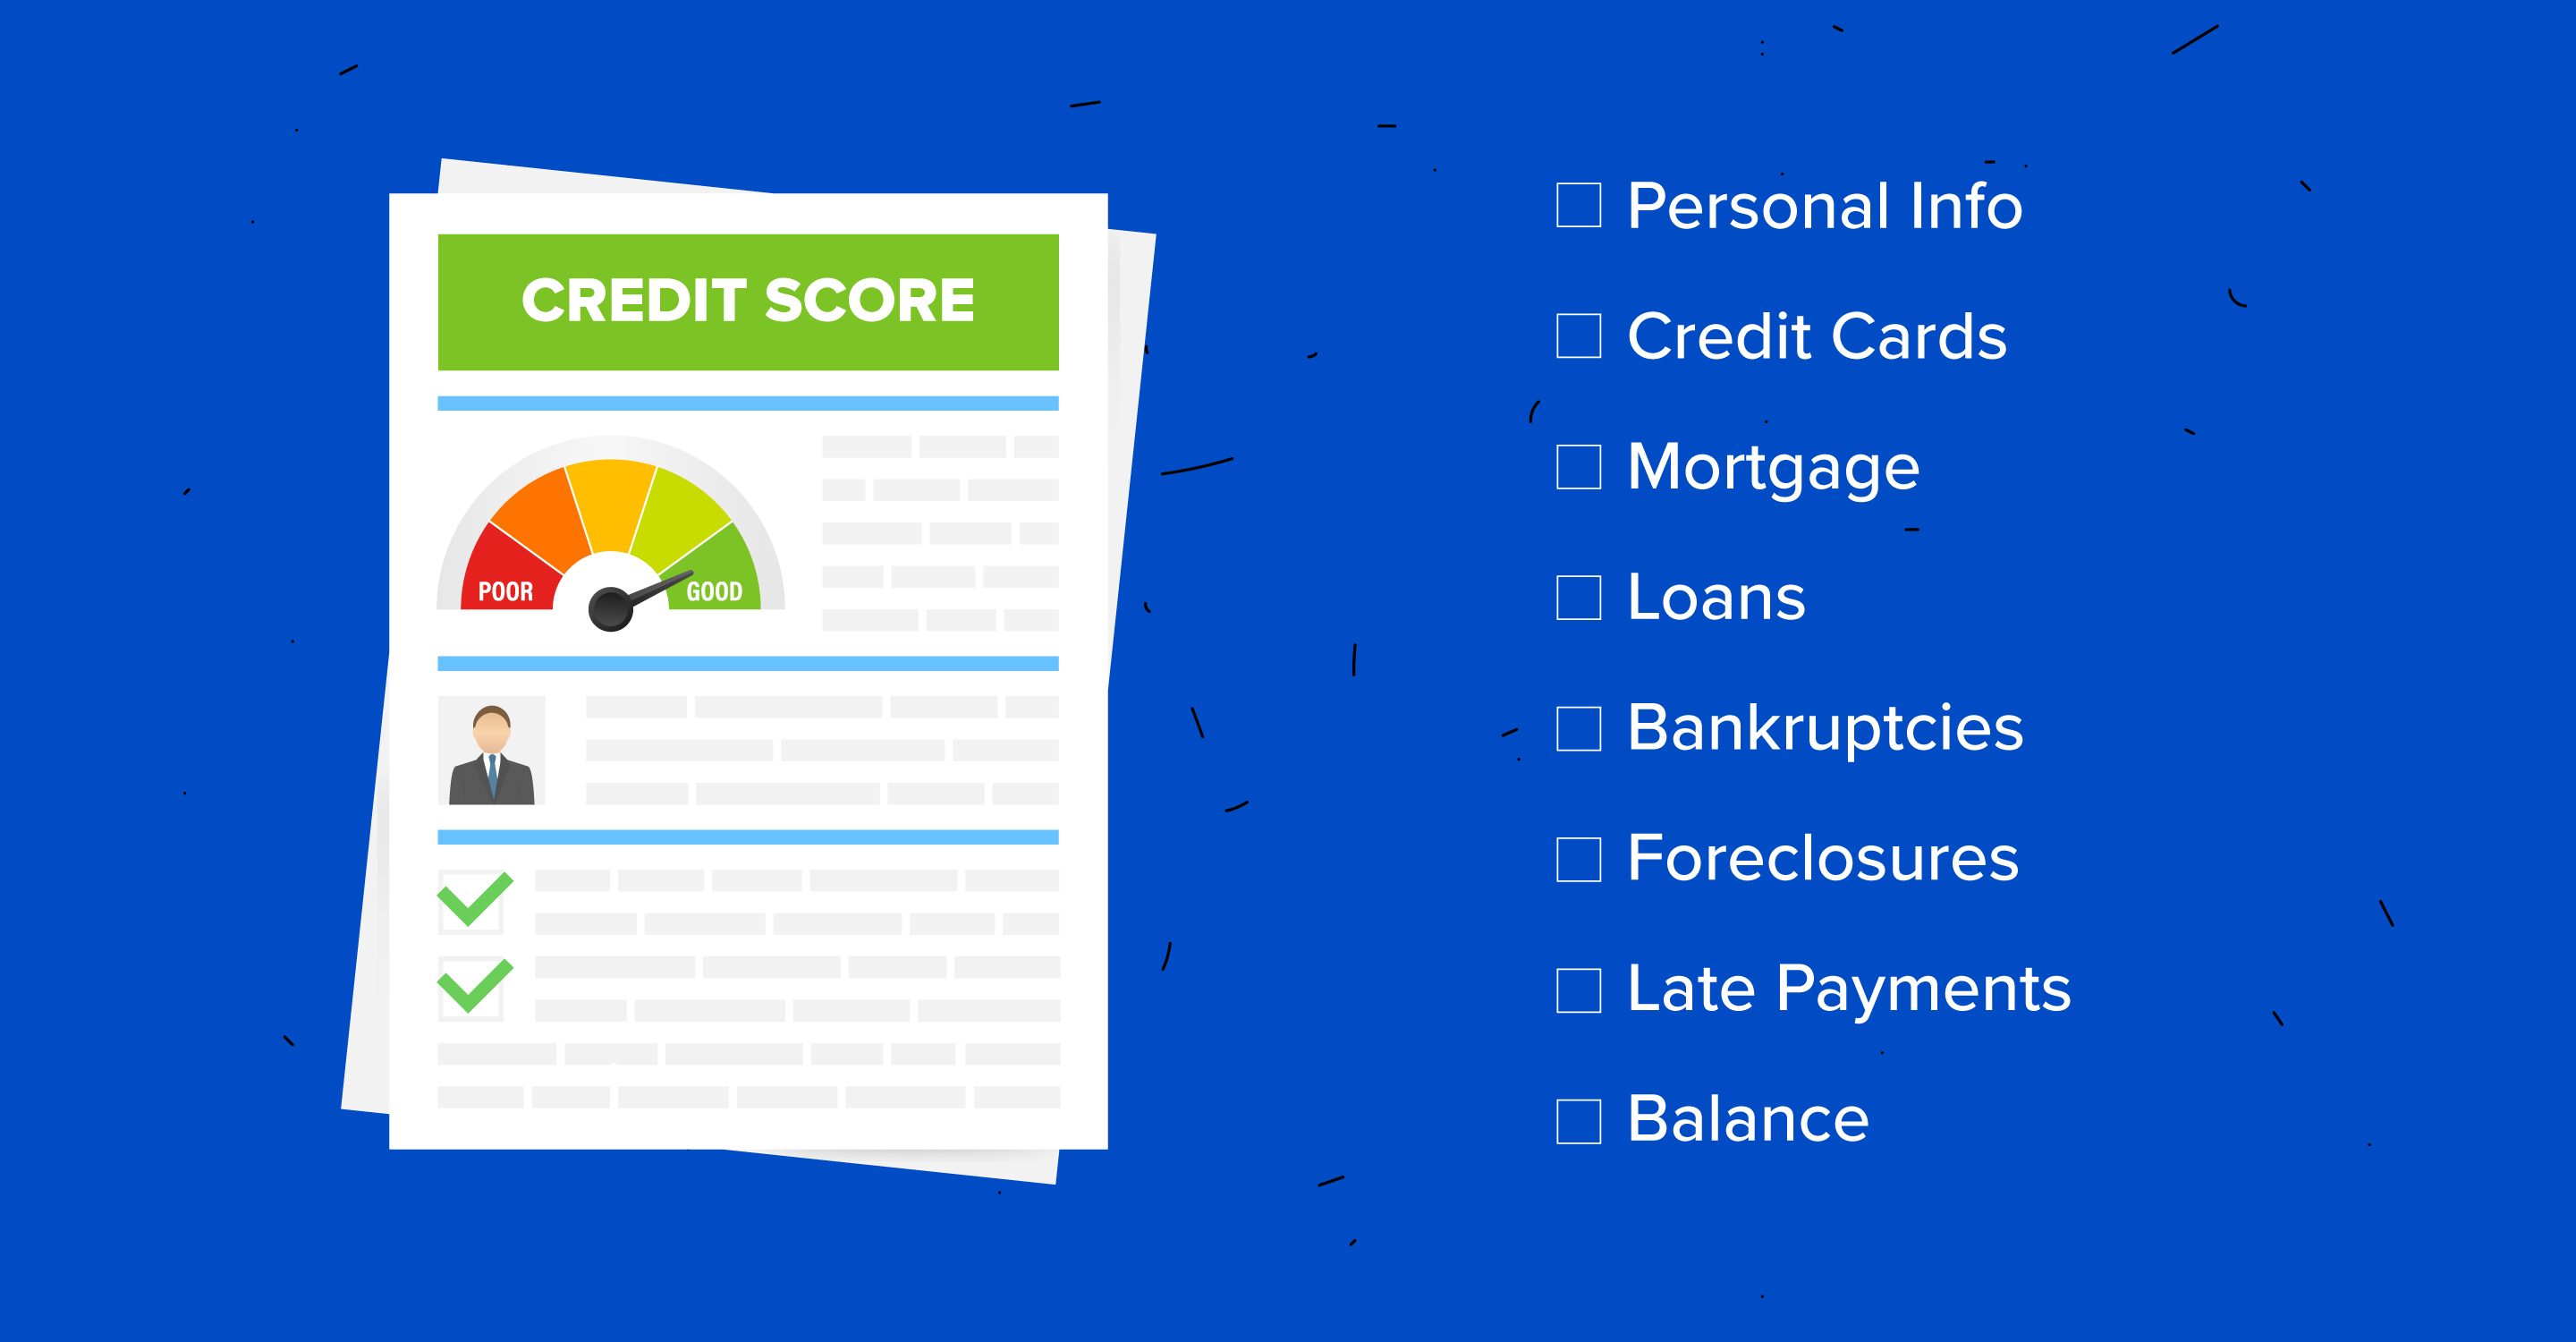 Graphic illustration of credit report with unnumbered list of information typically detailed in credit reports.